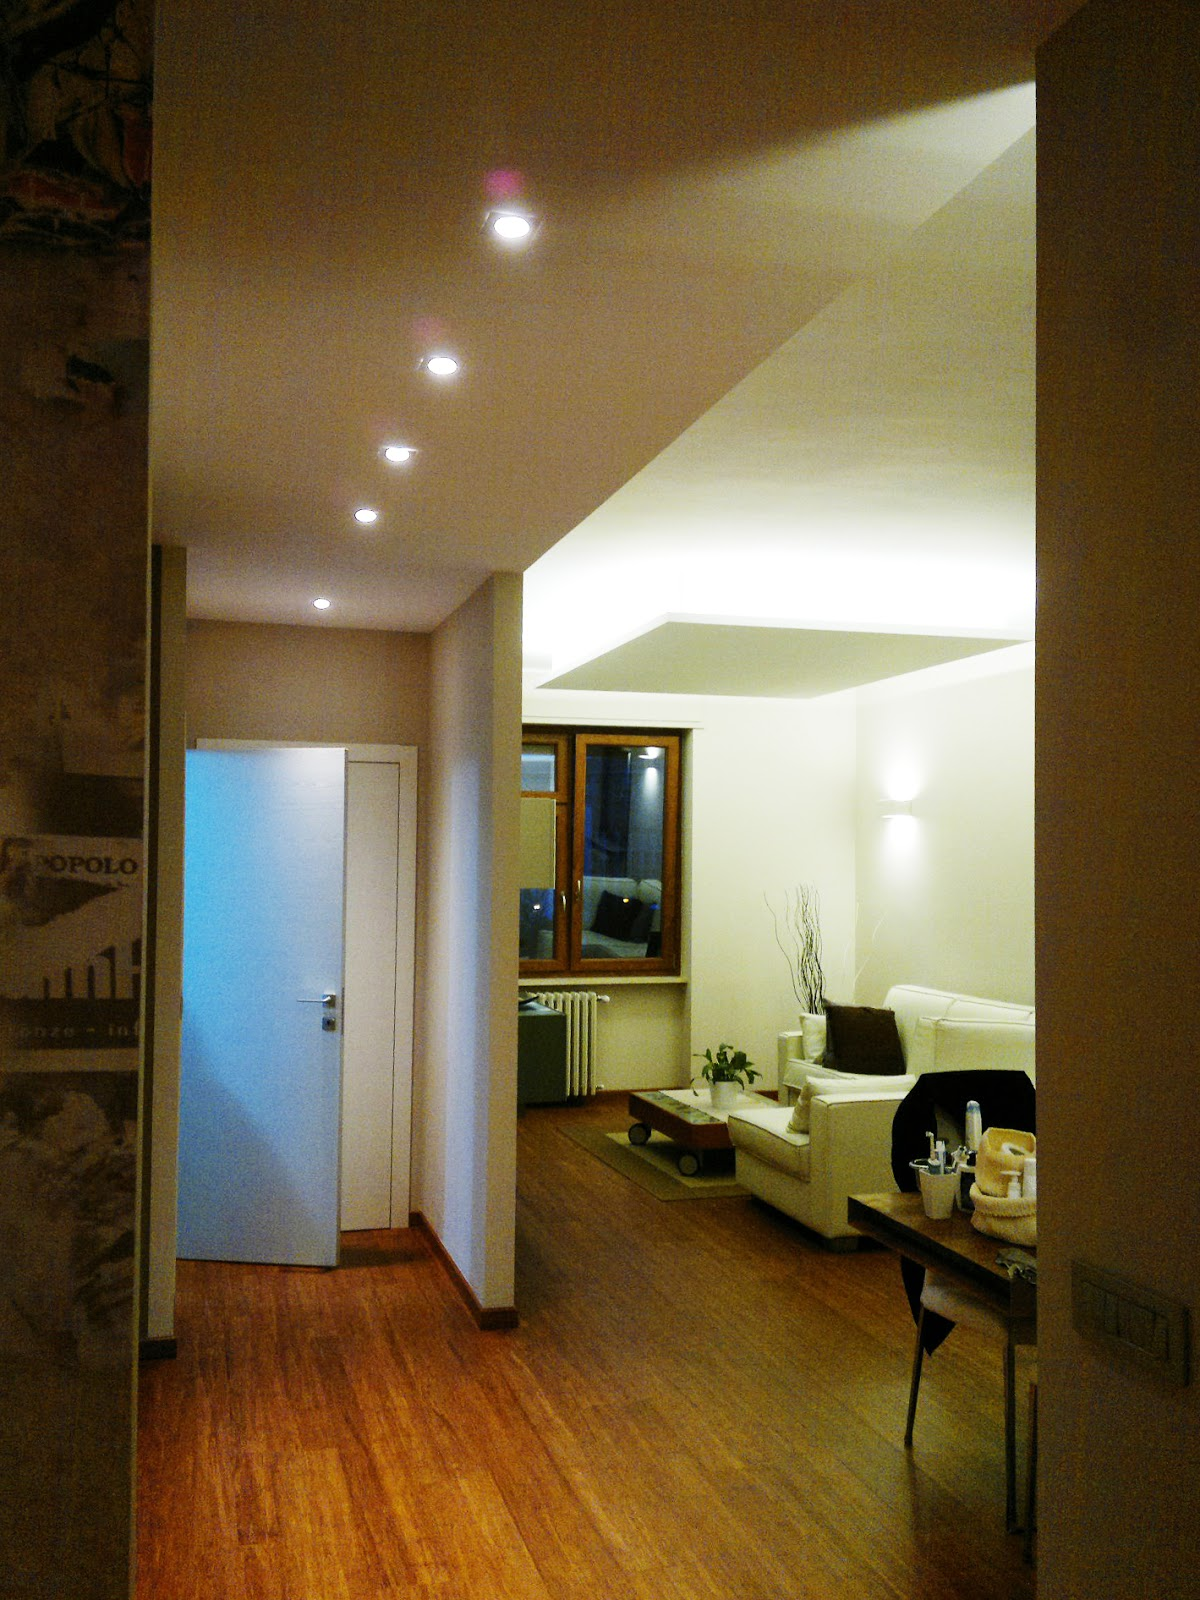 Illuminazione led casa illuminare a led gli ambienti con for Led per interni